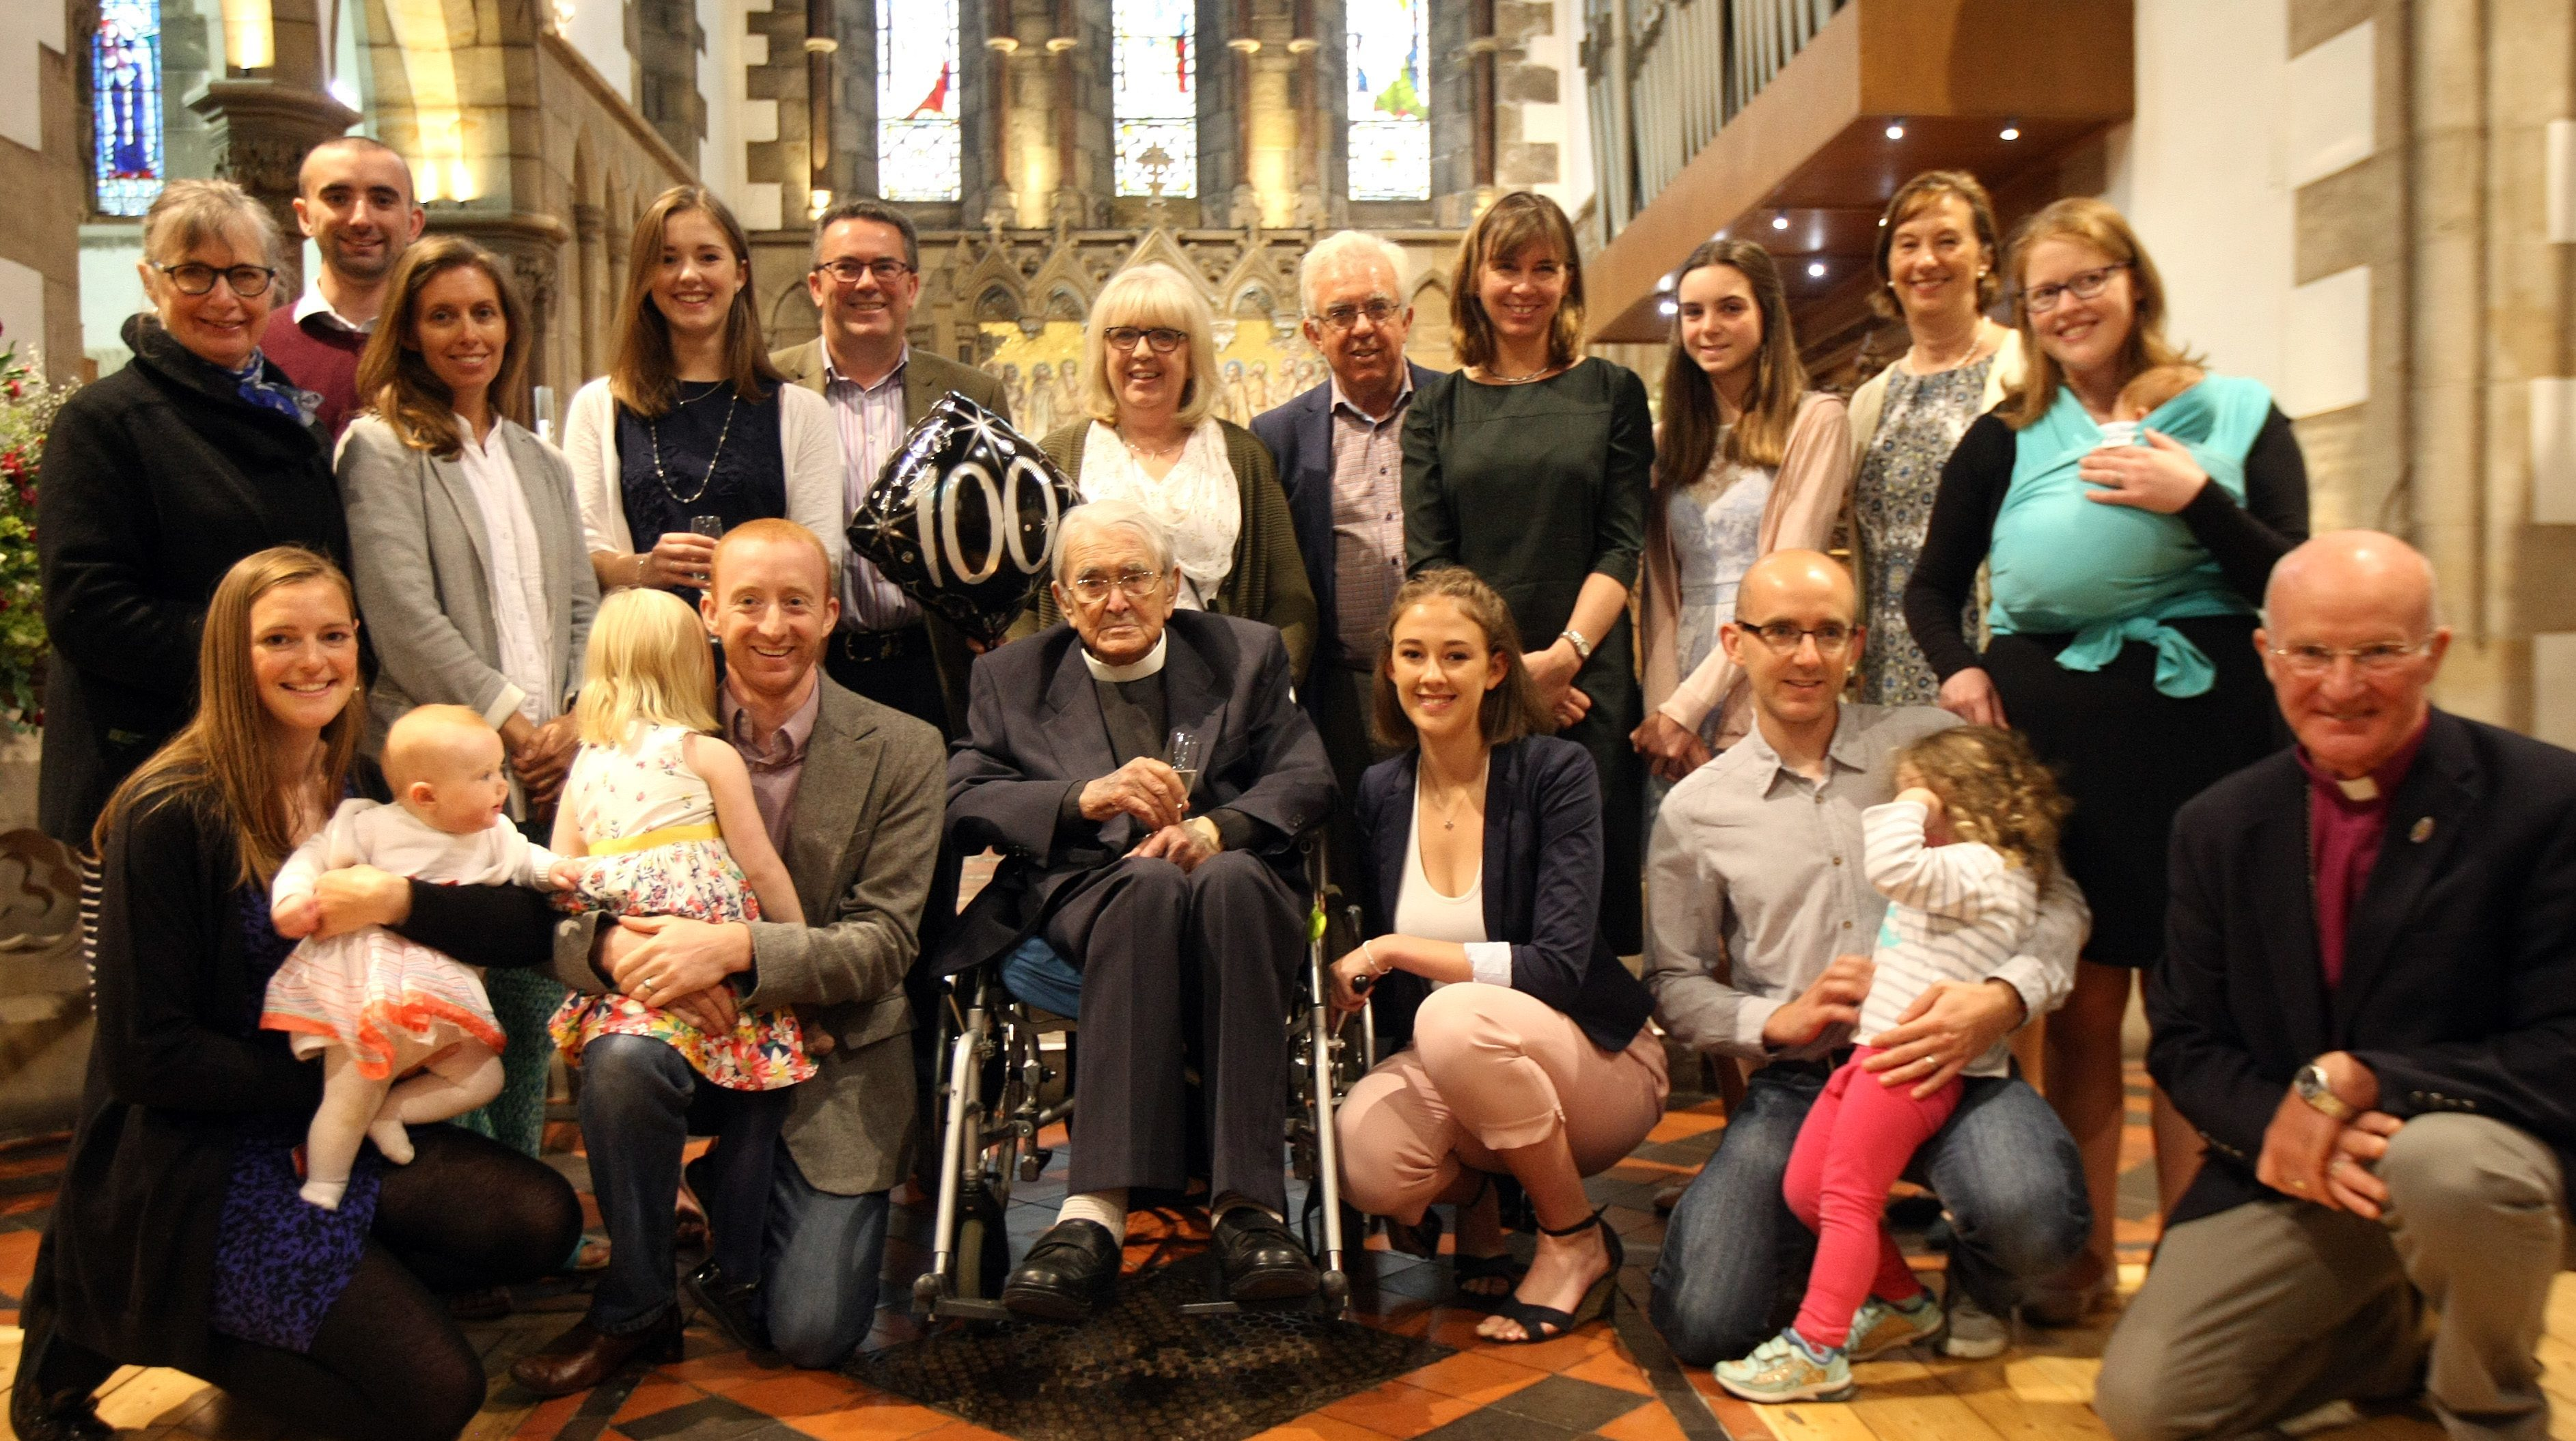 Rev Douglas Tucker celebrated his 100th birthday at St Andrews Episcopal Church with family and friends.